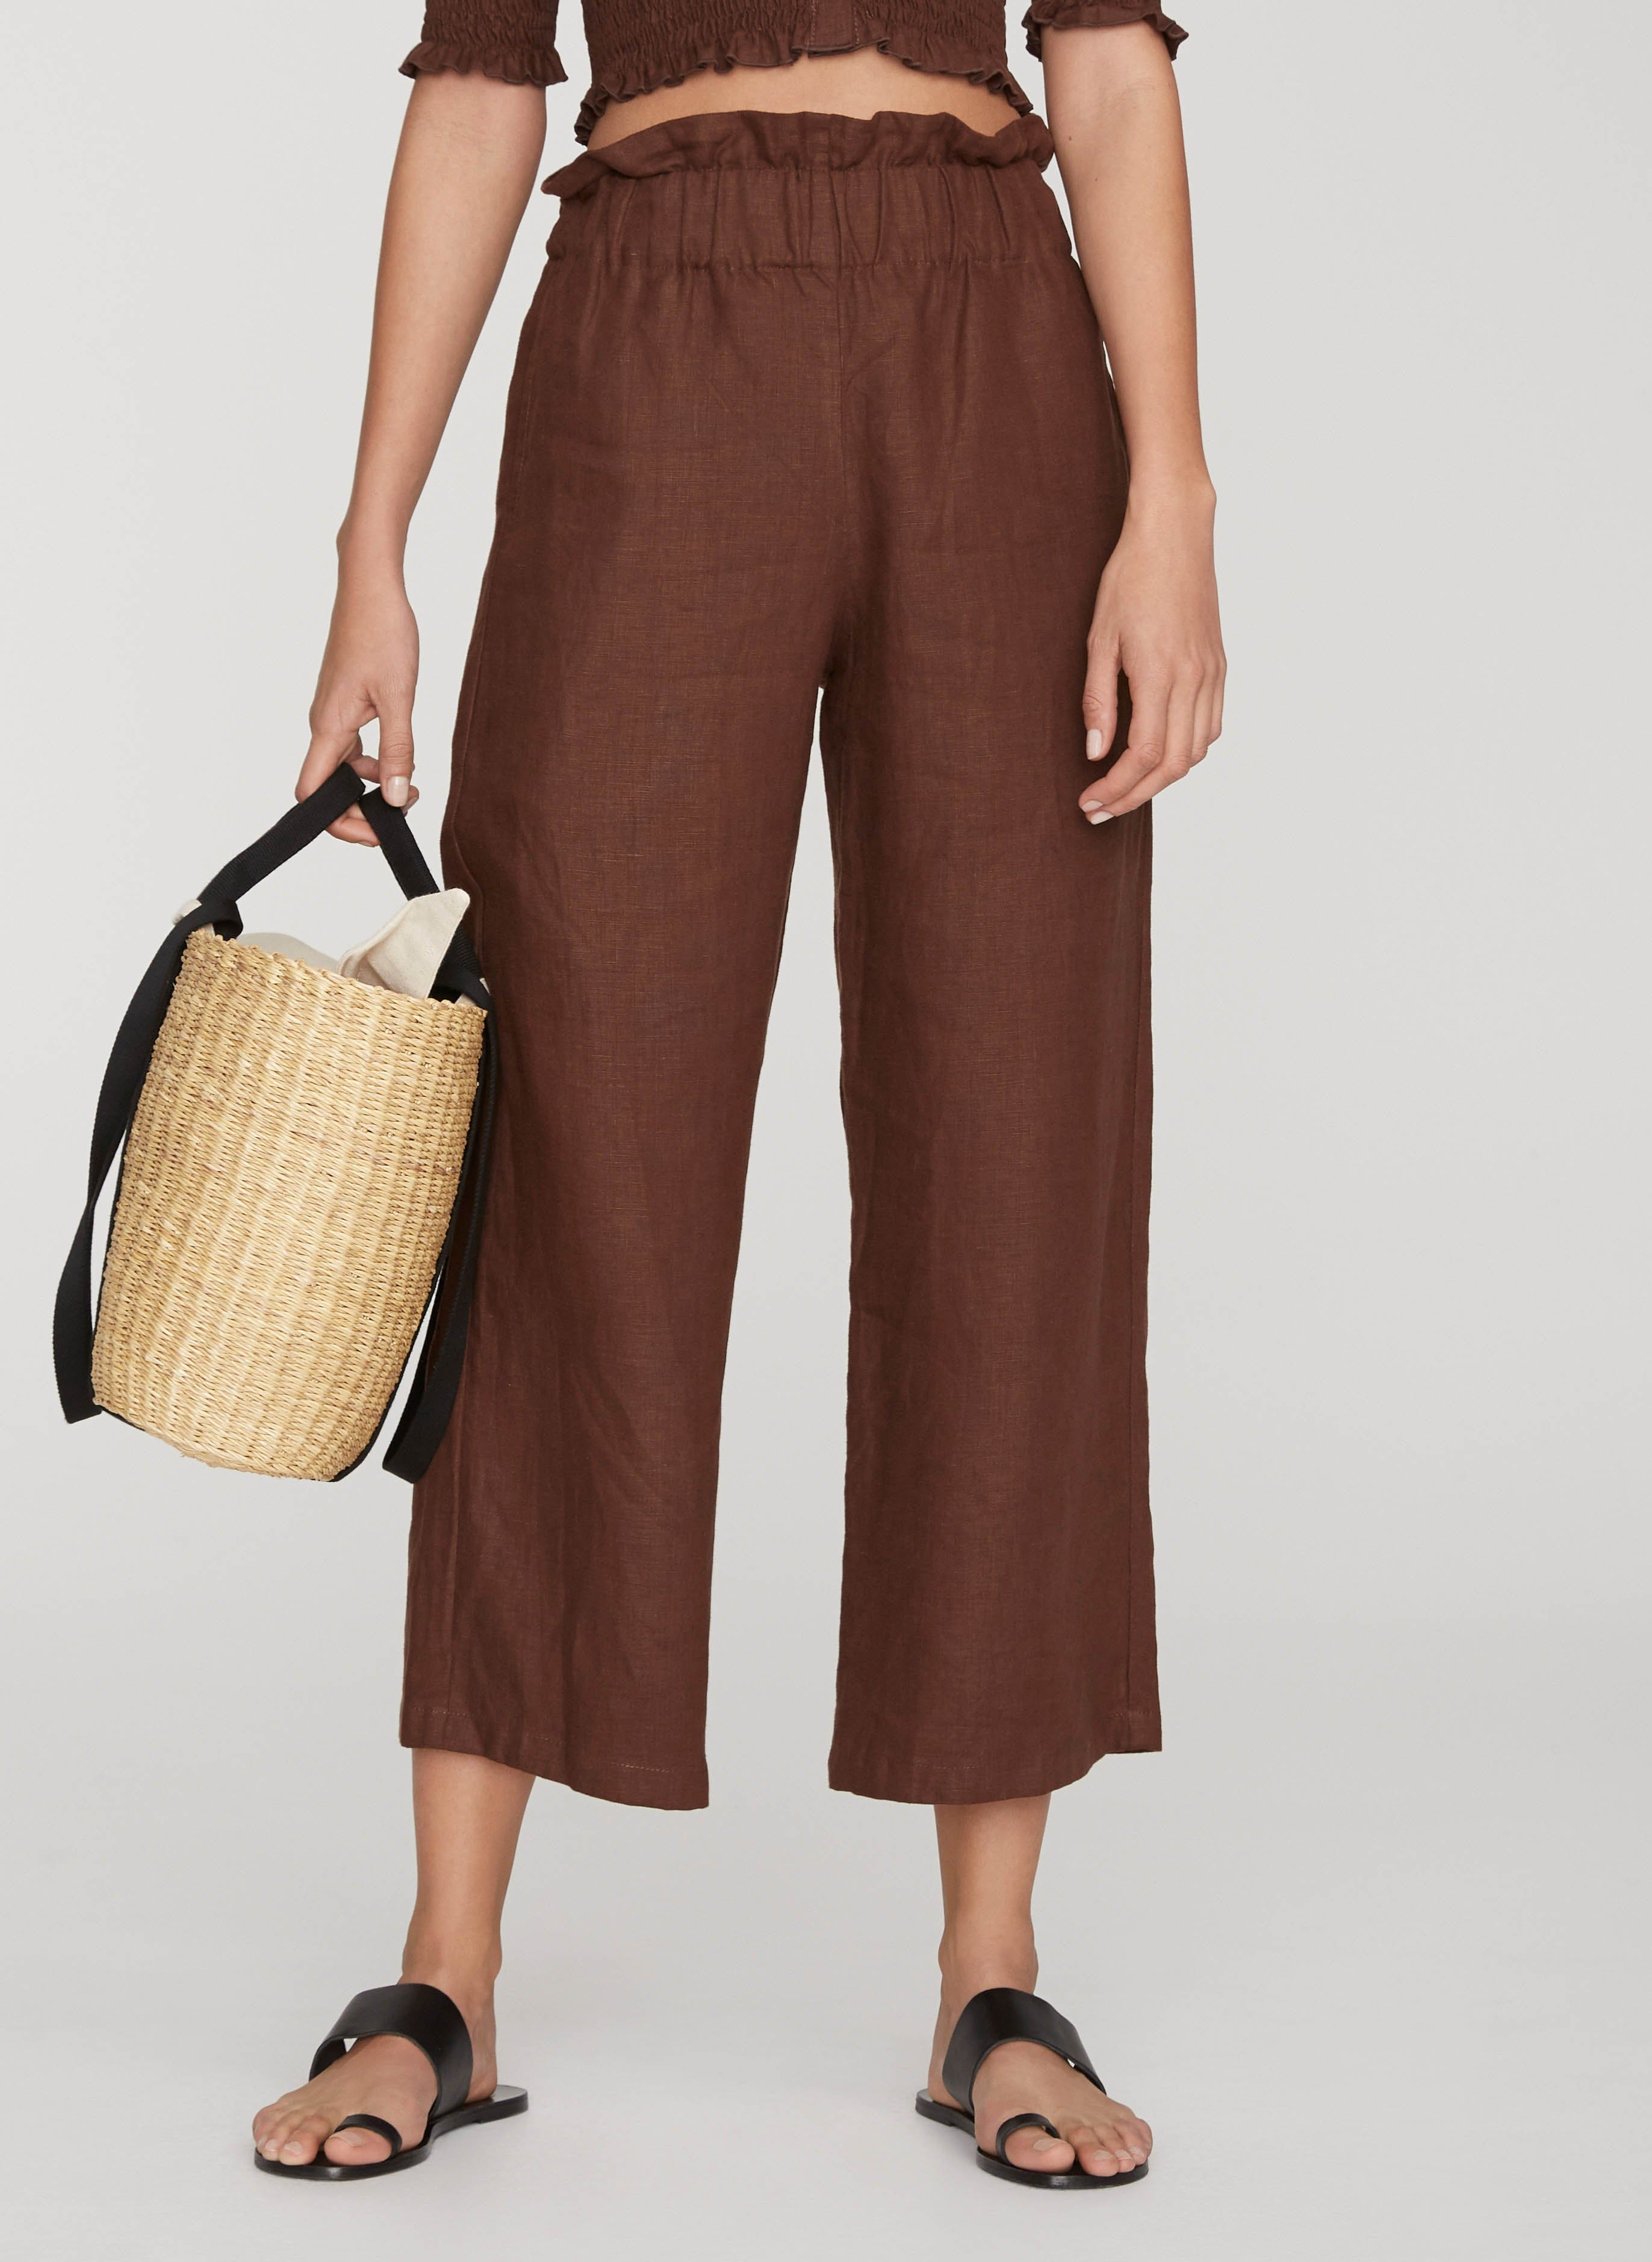 PLAIN ESPRESSO - VARADERO PANTS - FINAL SALE